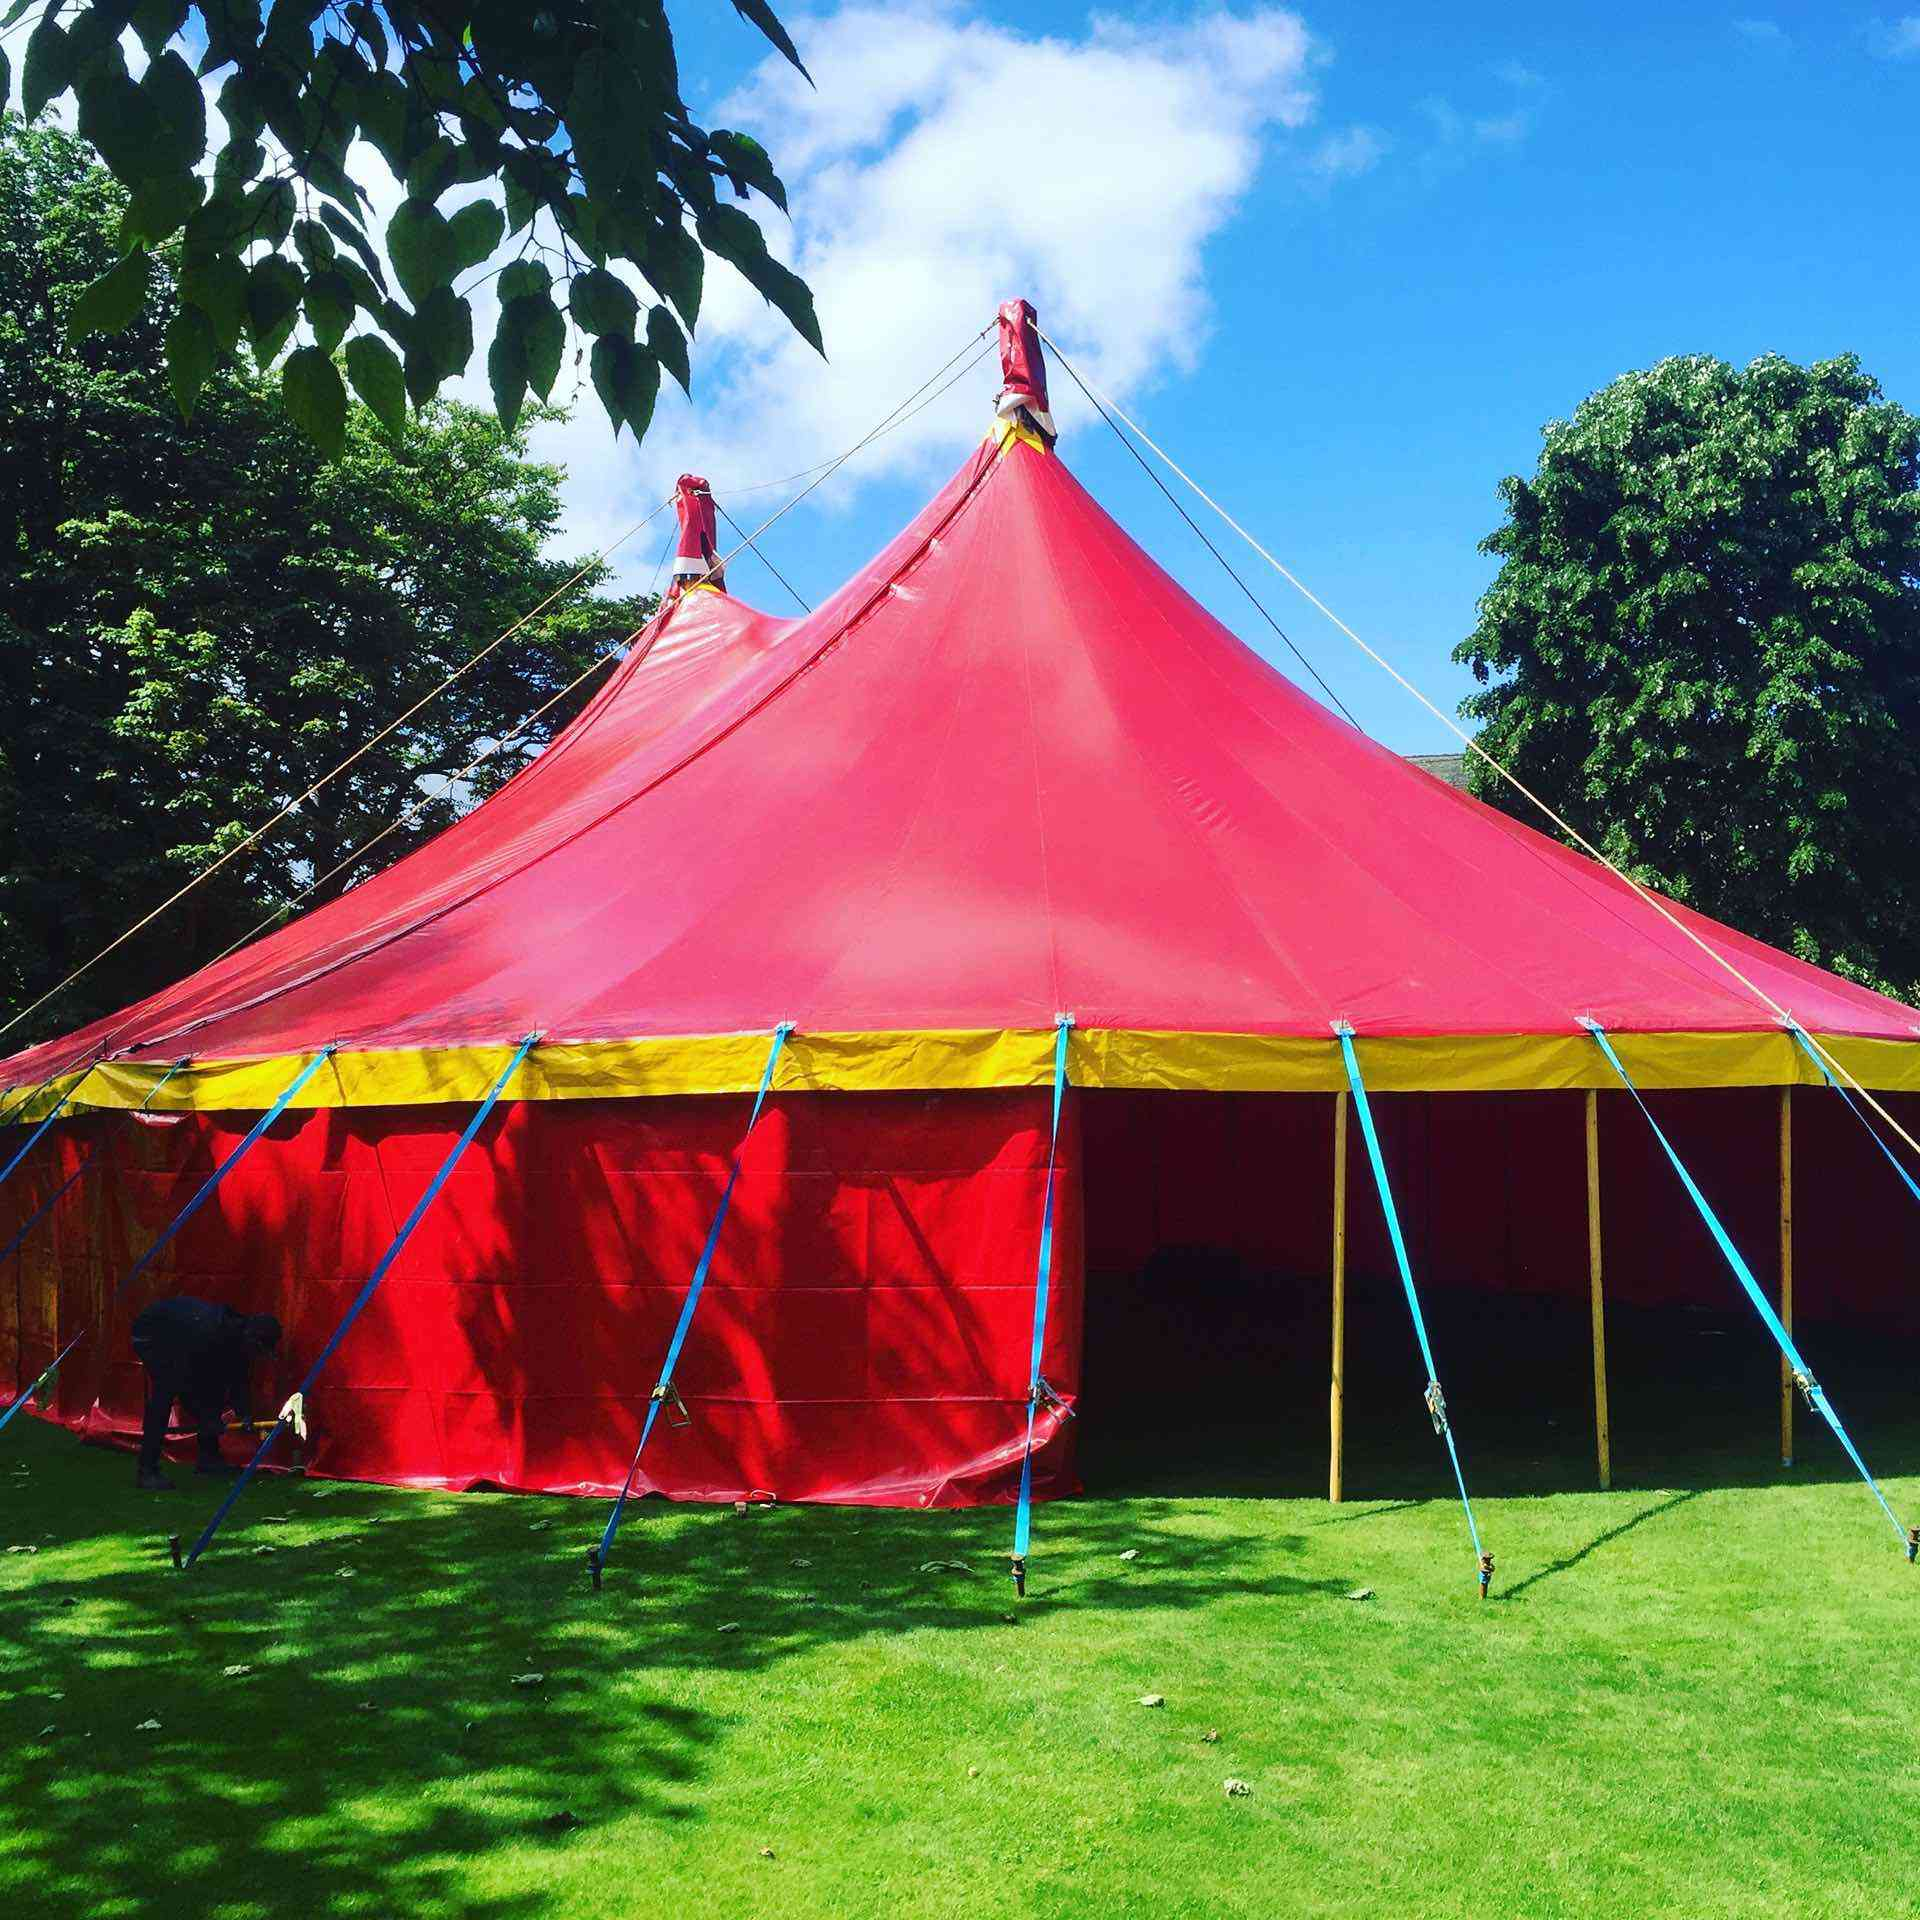 Circus Tent on summers day